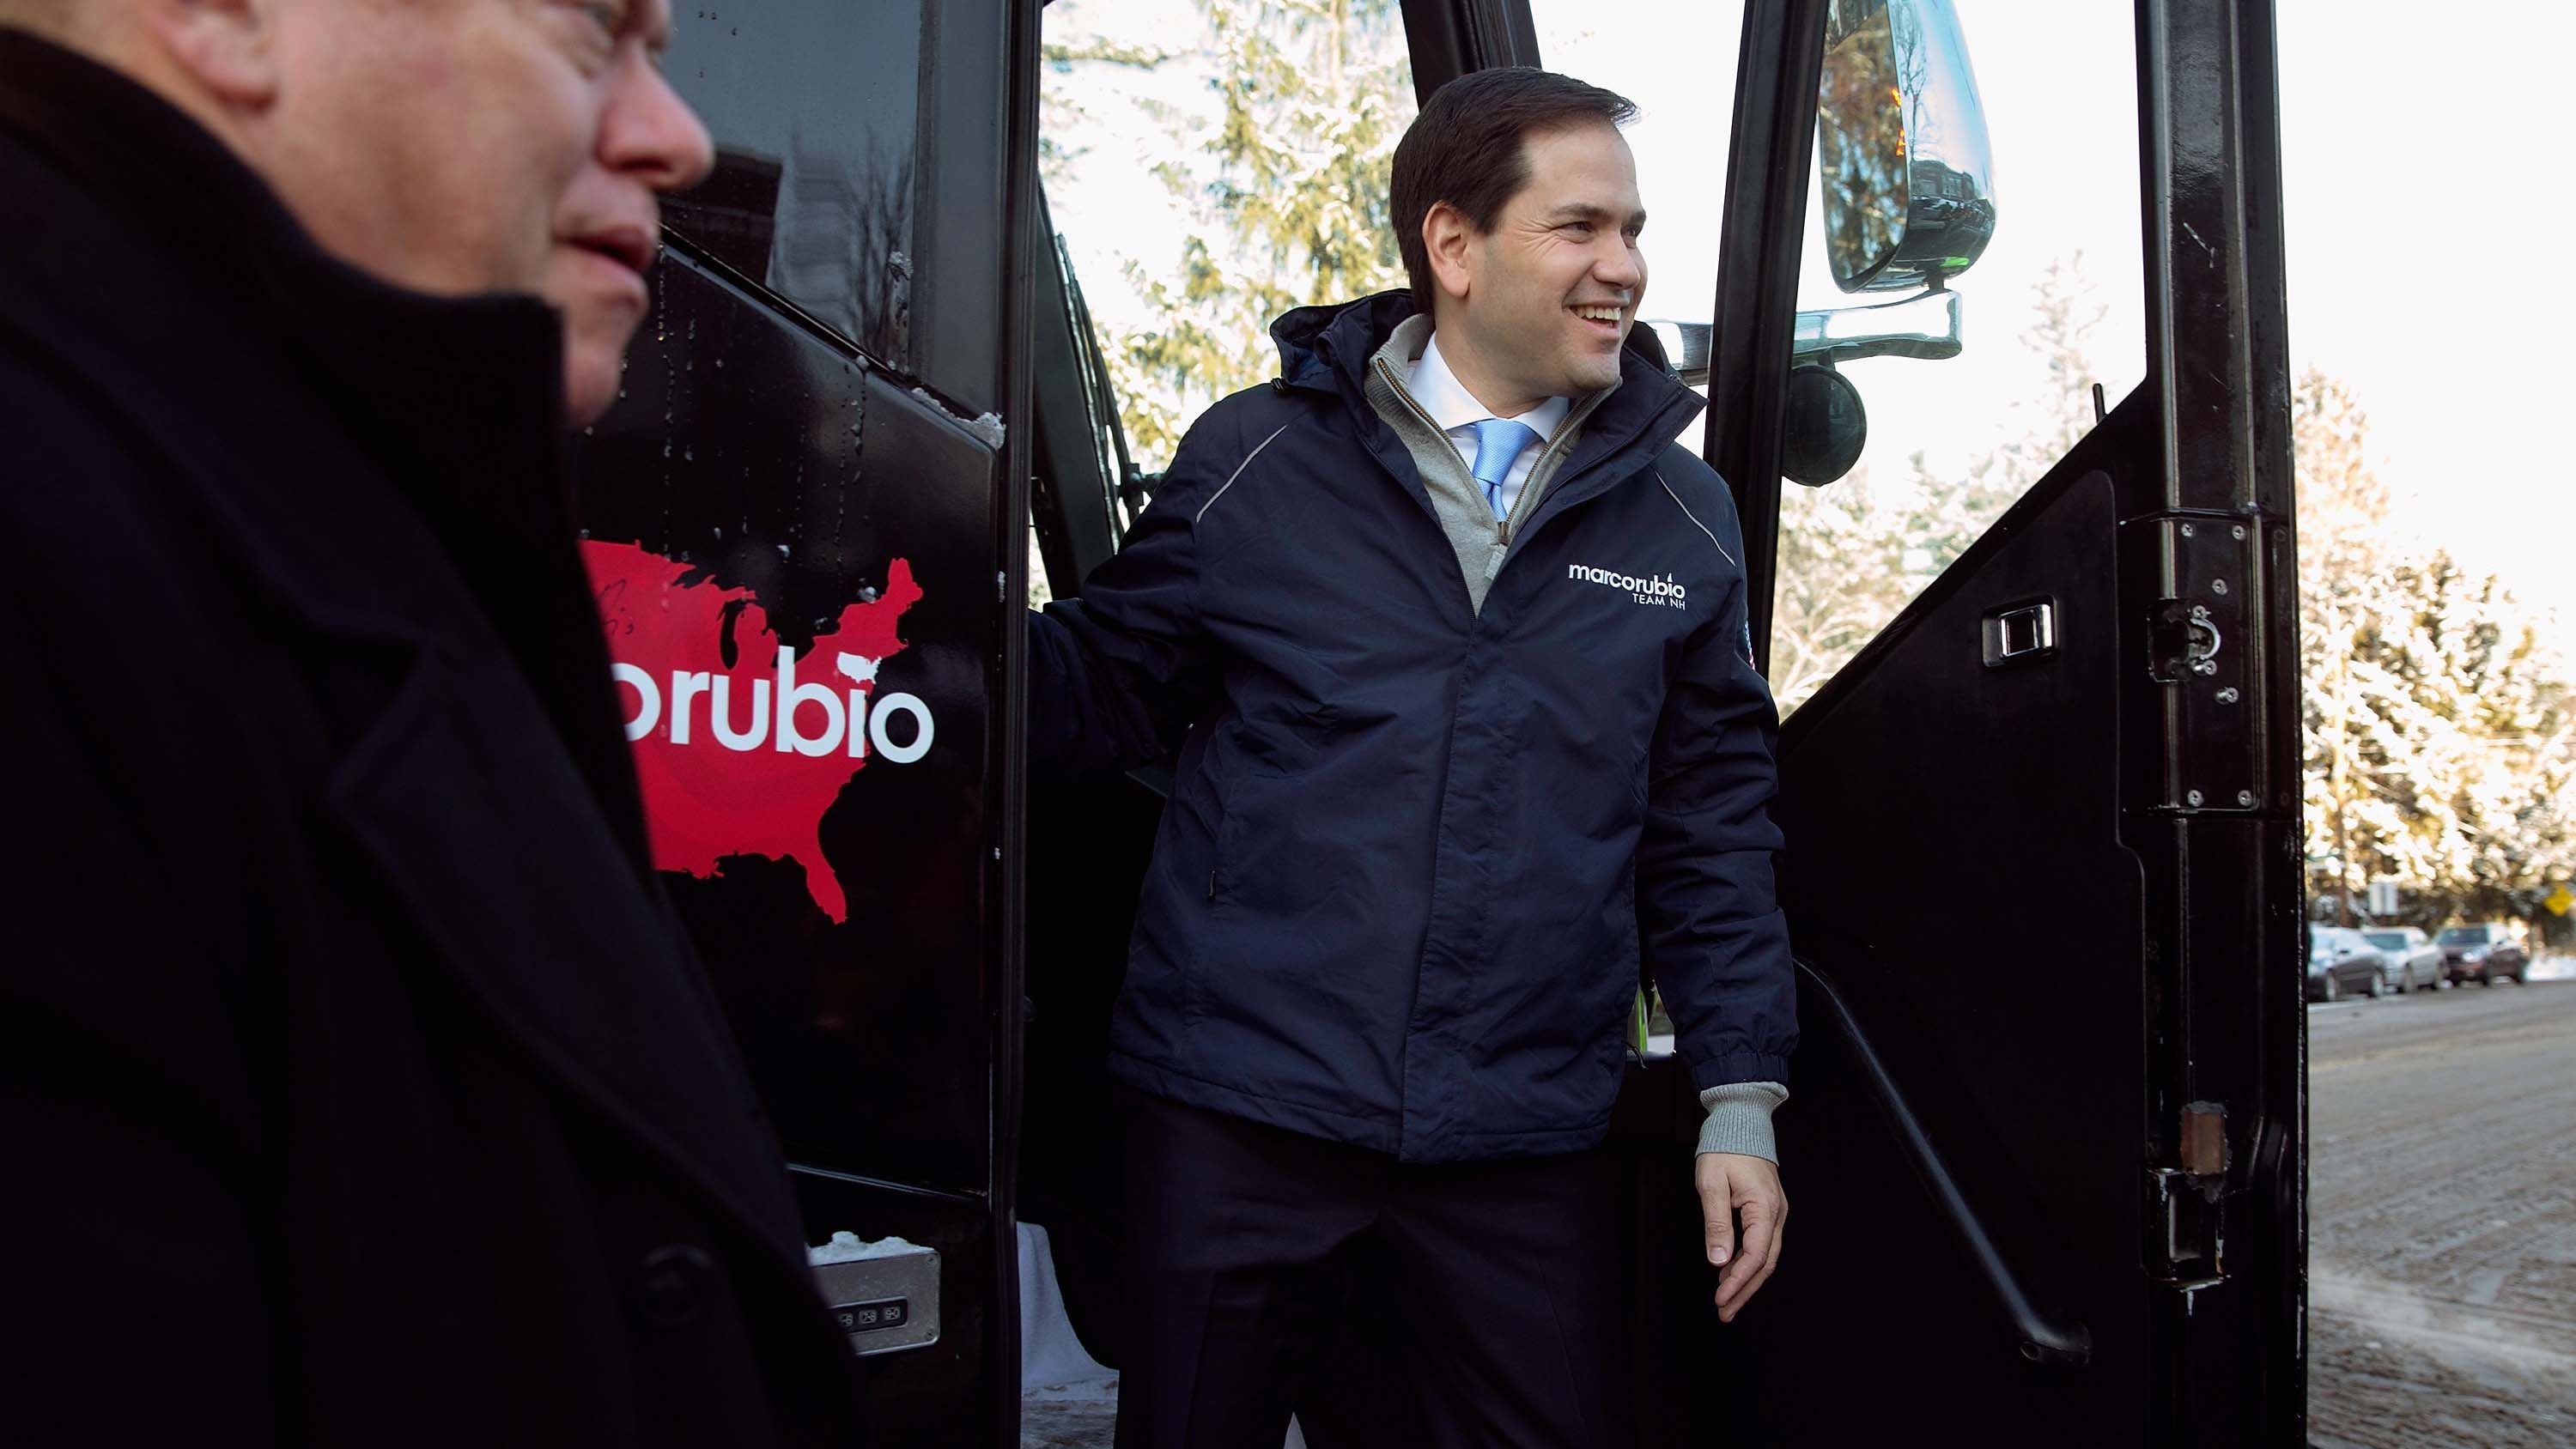 Republican presidential candidate Sen. Marco Rubio (R-FL) steps off his campaign bus outside the polling place at Webster School to thank supporters in Manchester, New Hampshire.